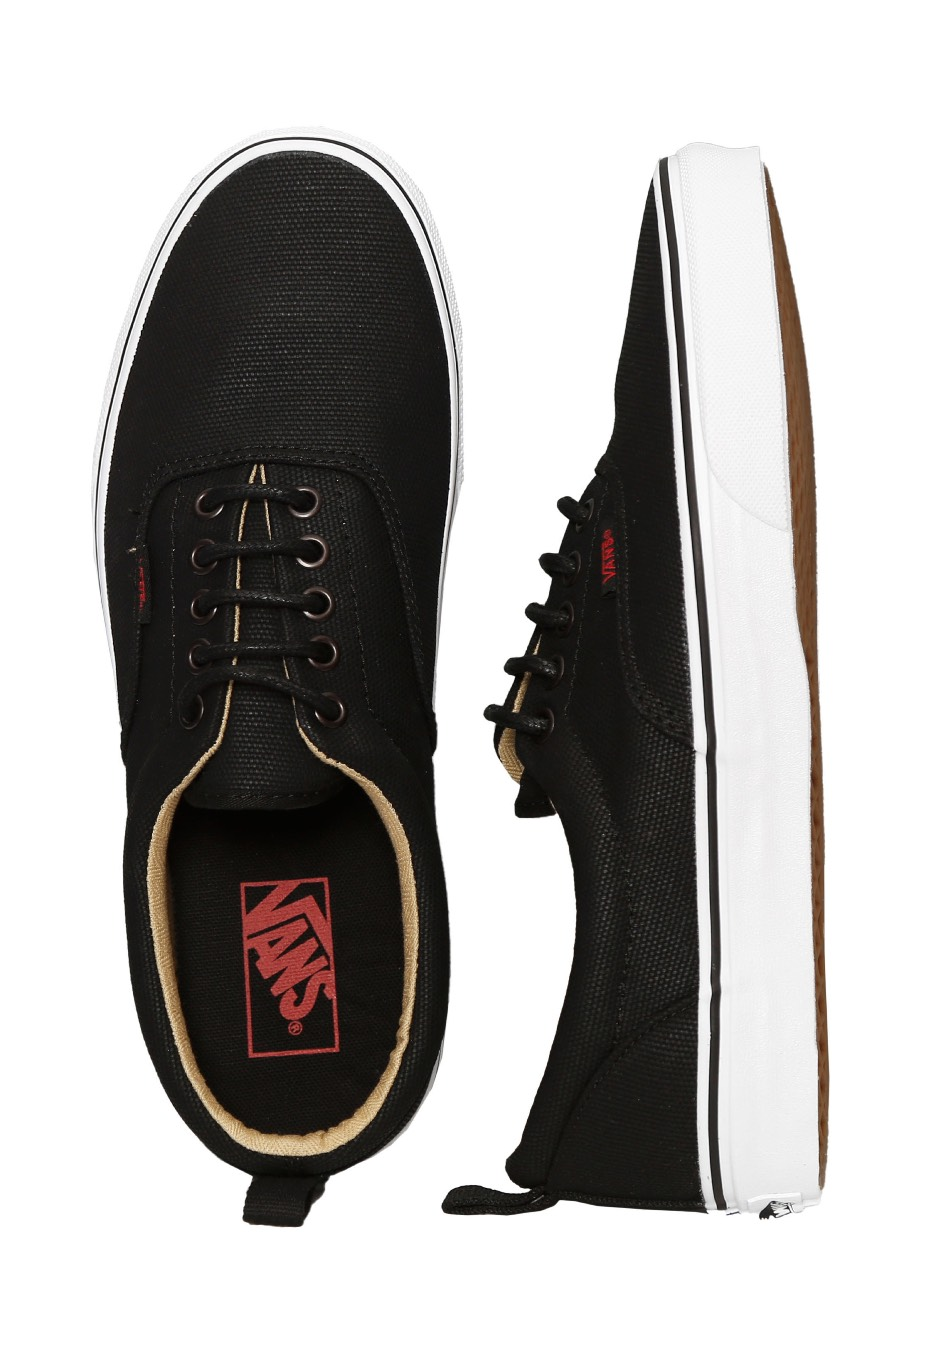 Vans - Era PT Military Twill Black True White - Girl Shoes - Impericon.com  Worldwide 868a990ce